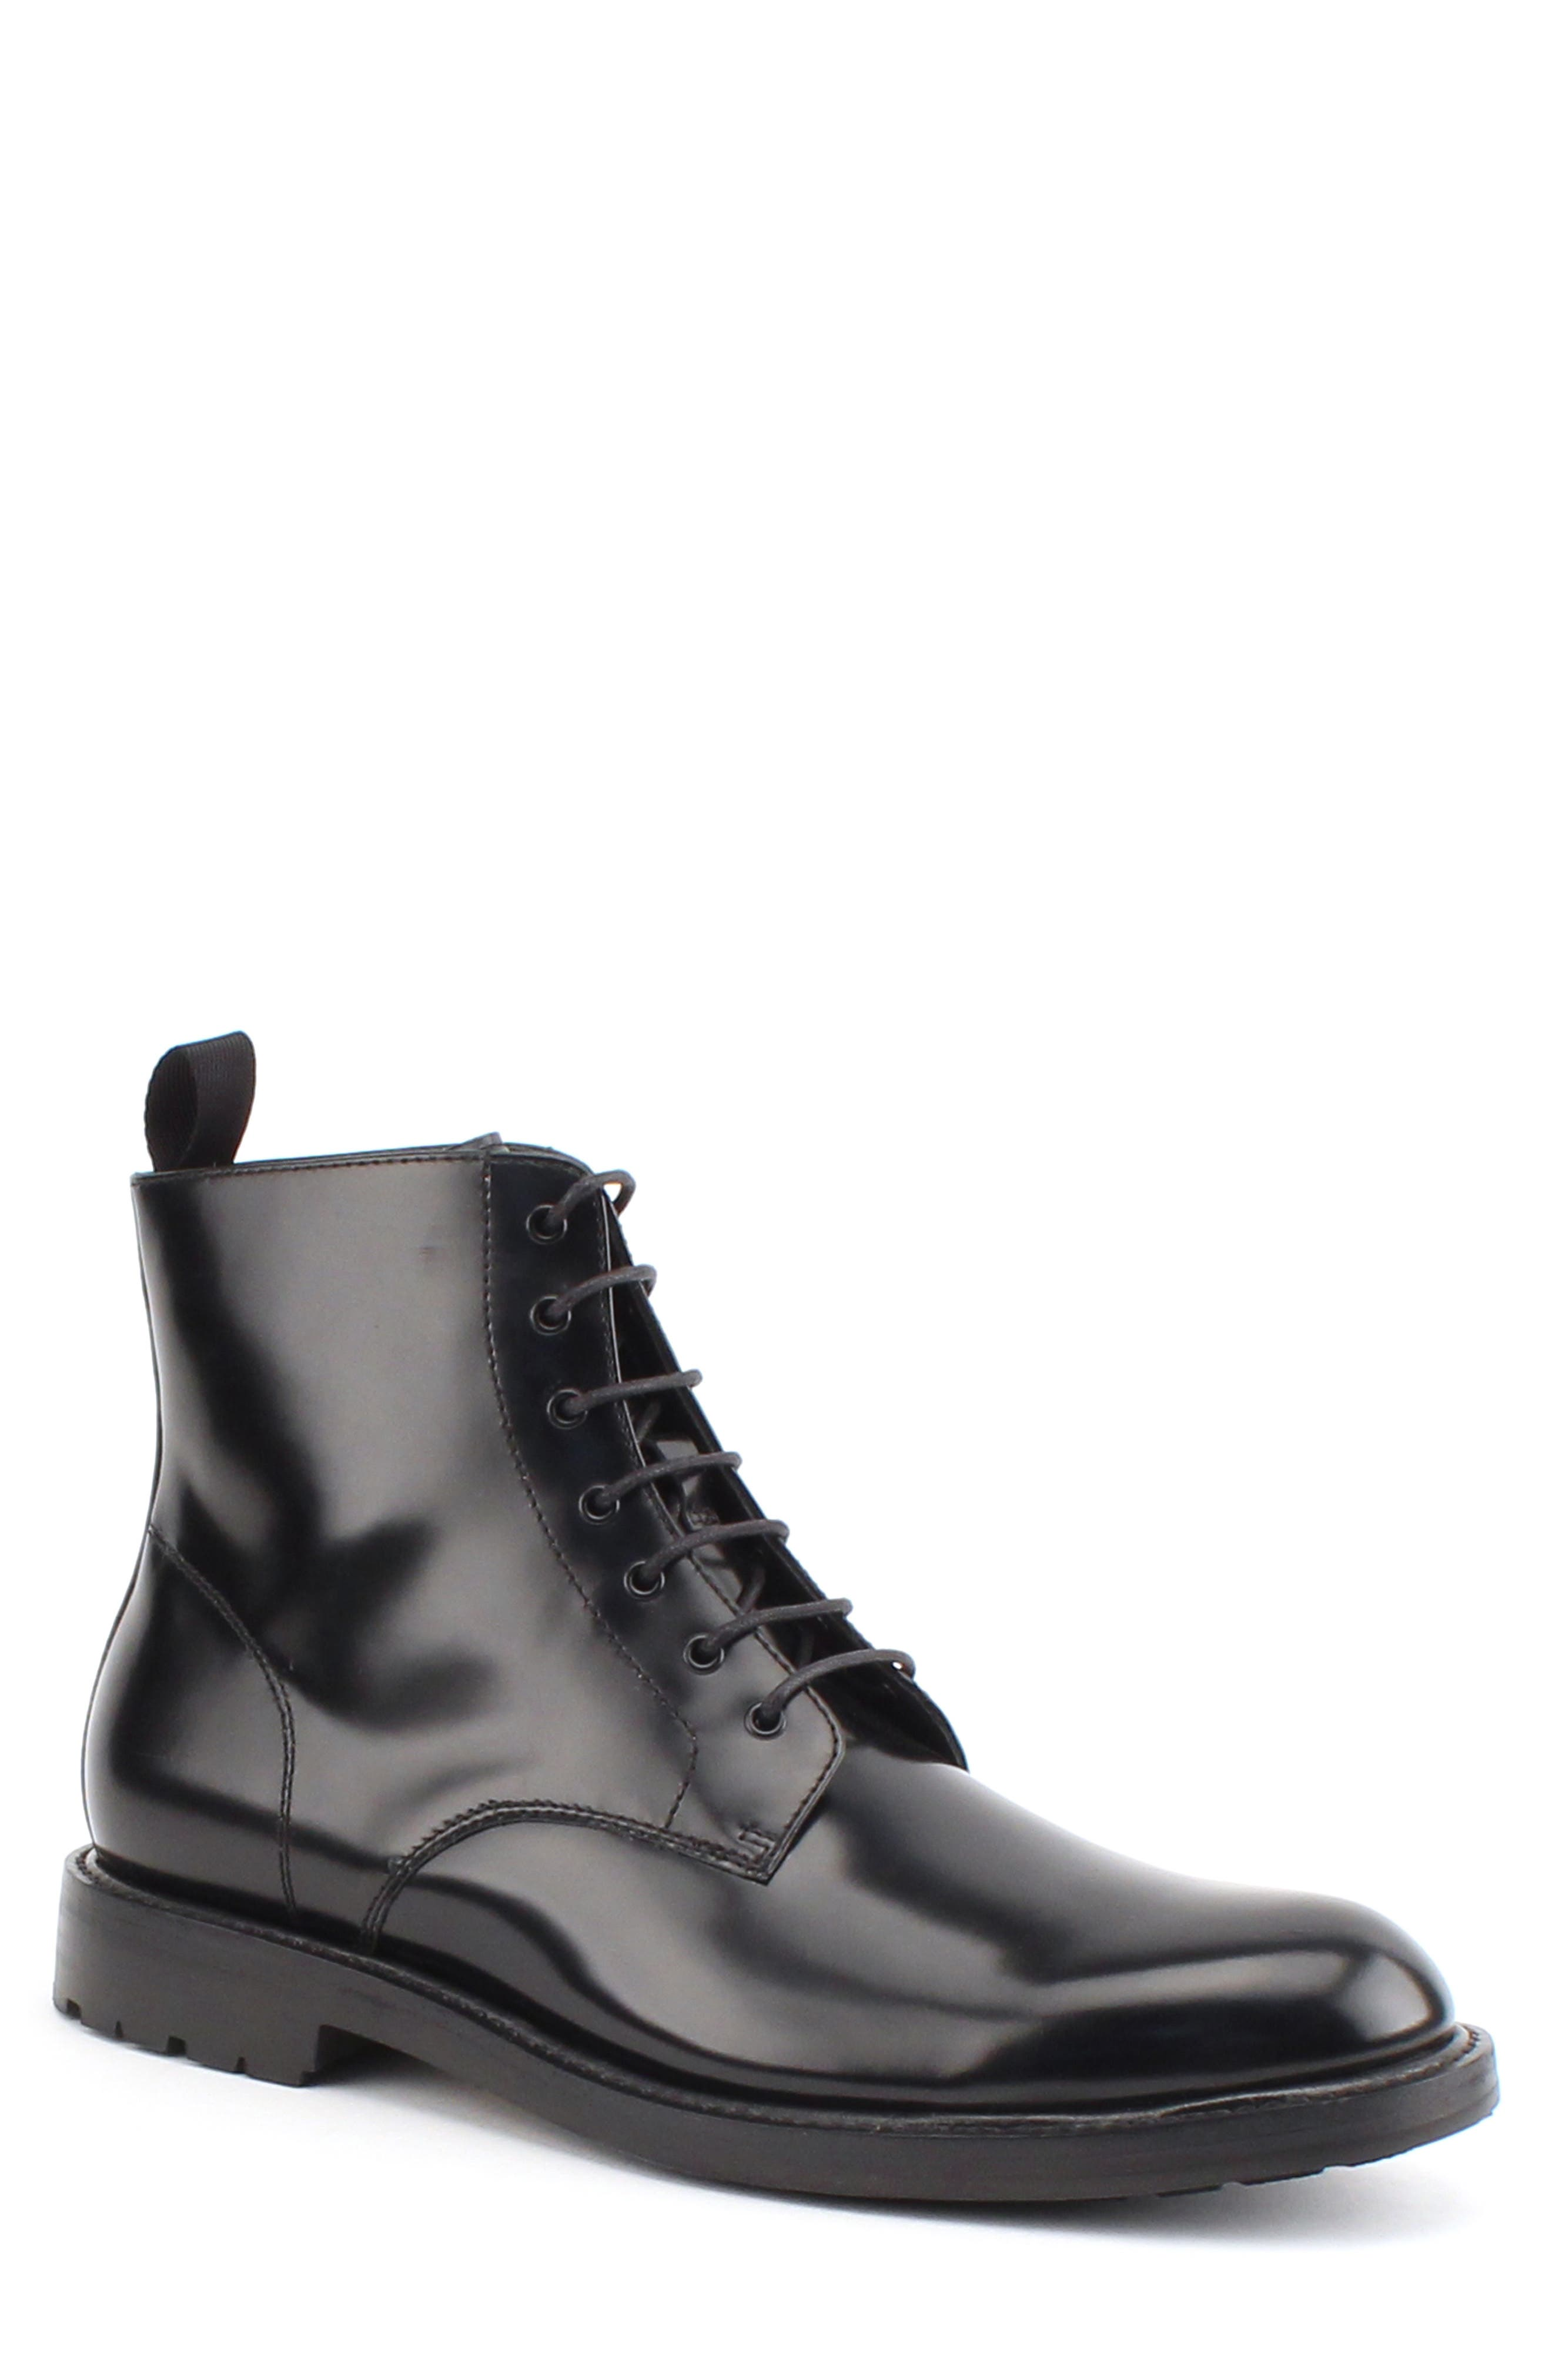 GORDON RUSH Men'S Raleigh Leather Boots in Black